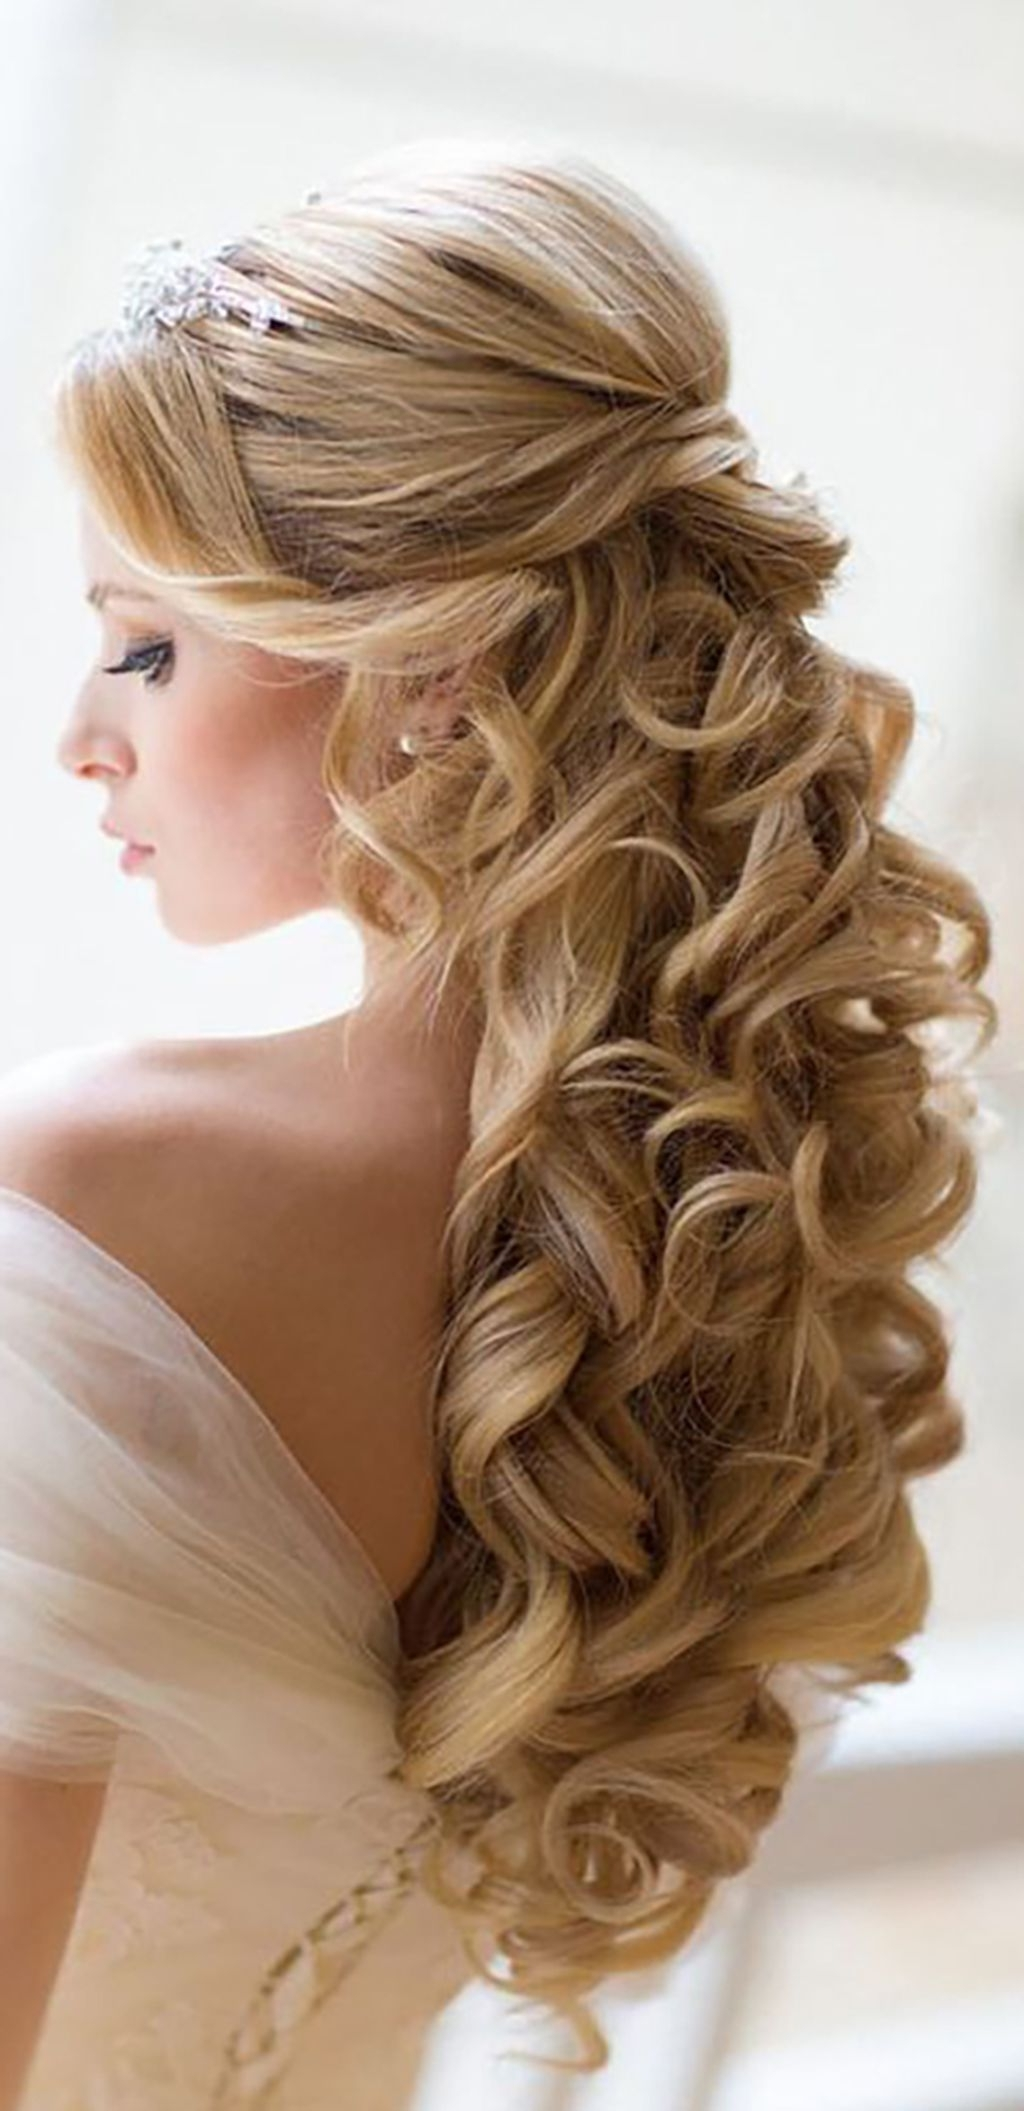 Awesome 86 Classy Wedding Hairstyle Ideas For Long Hair Women Http Inside Popular Wedding Hairstyles For Long Blonde Hair (View 9 of 15)